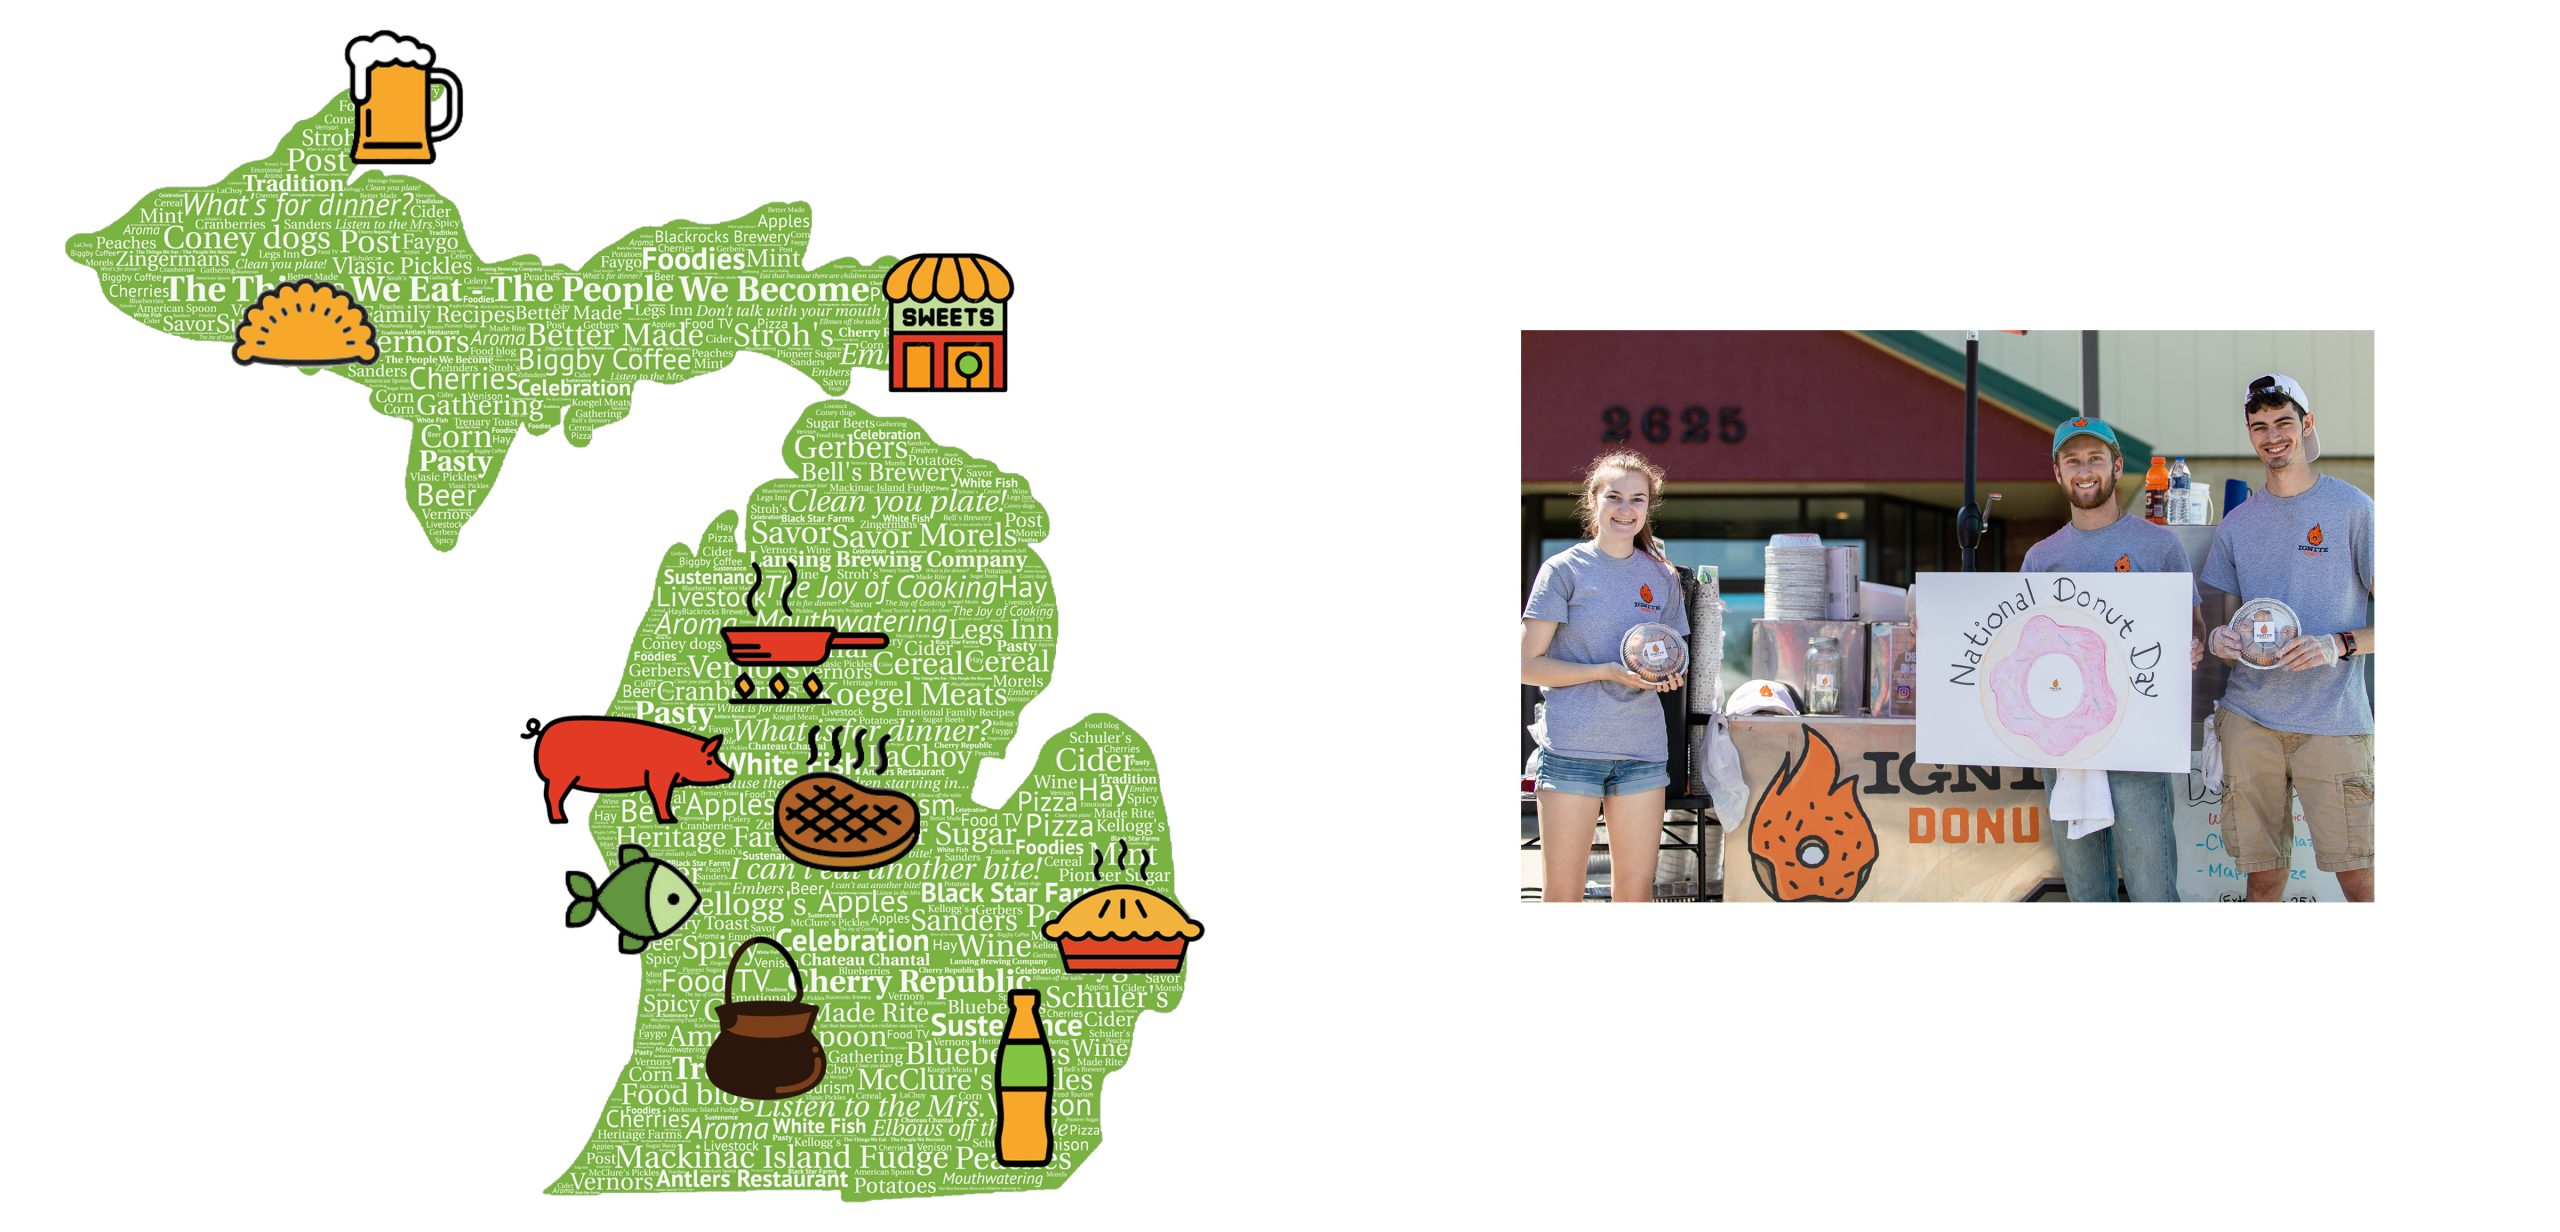 Clickable map of Michigan with icons pertaining to a different memory. A photo of Ignite Donuts is next to the map.